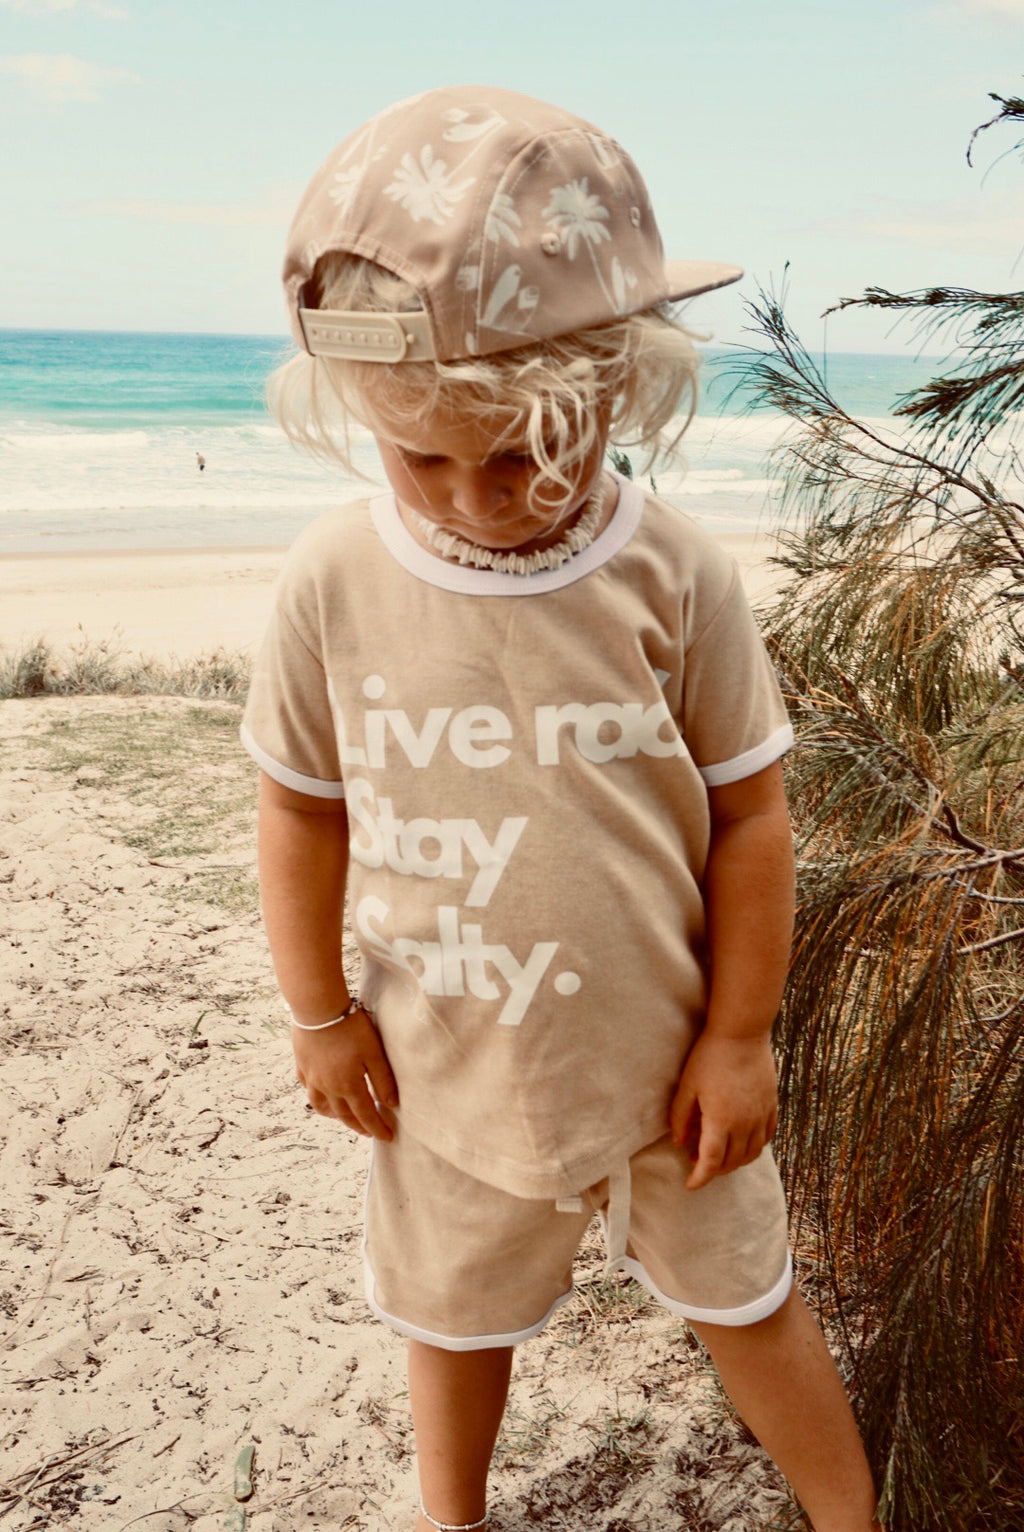 """Live rad, stay salty"" old skool organic set"